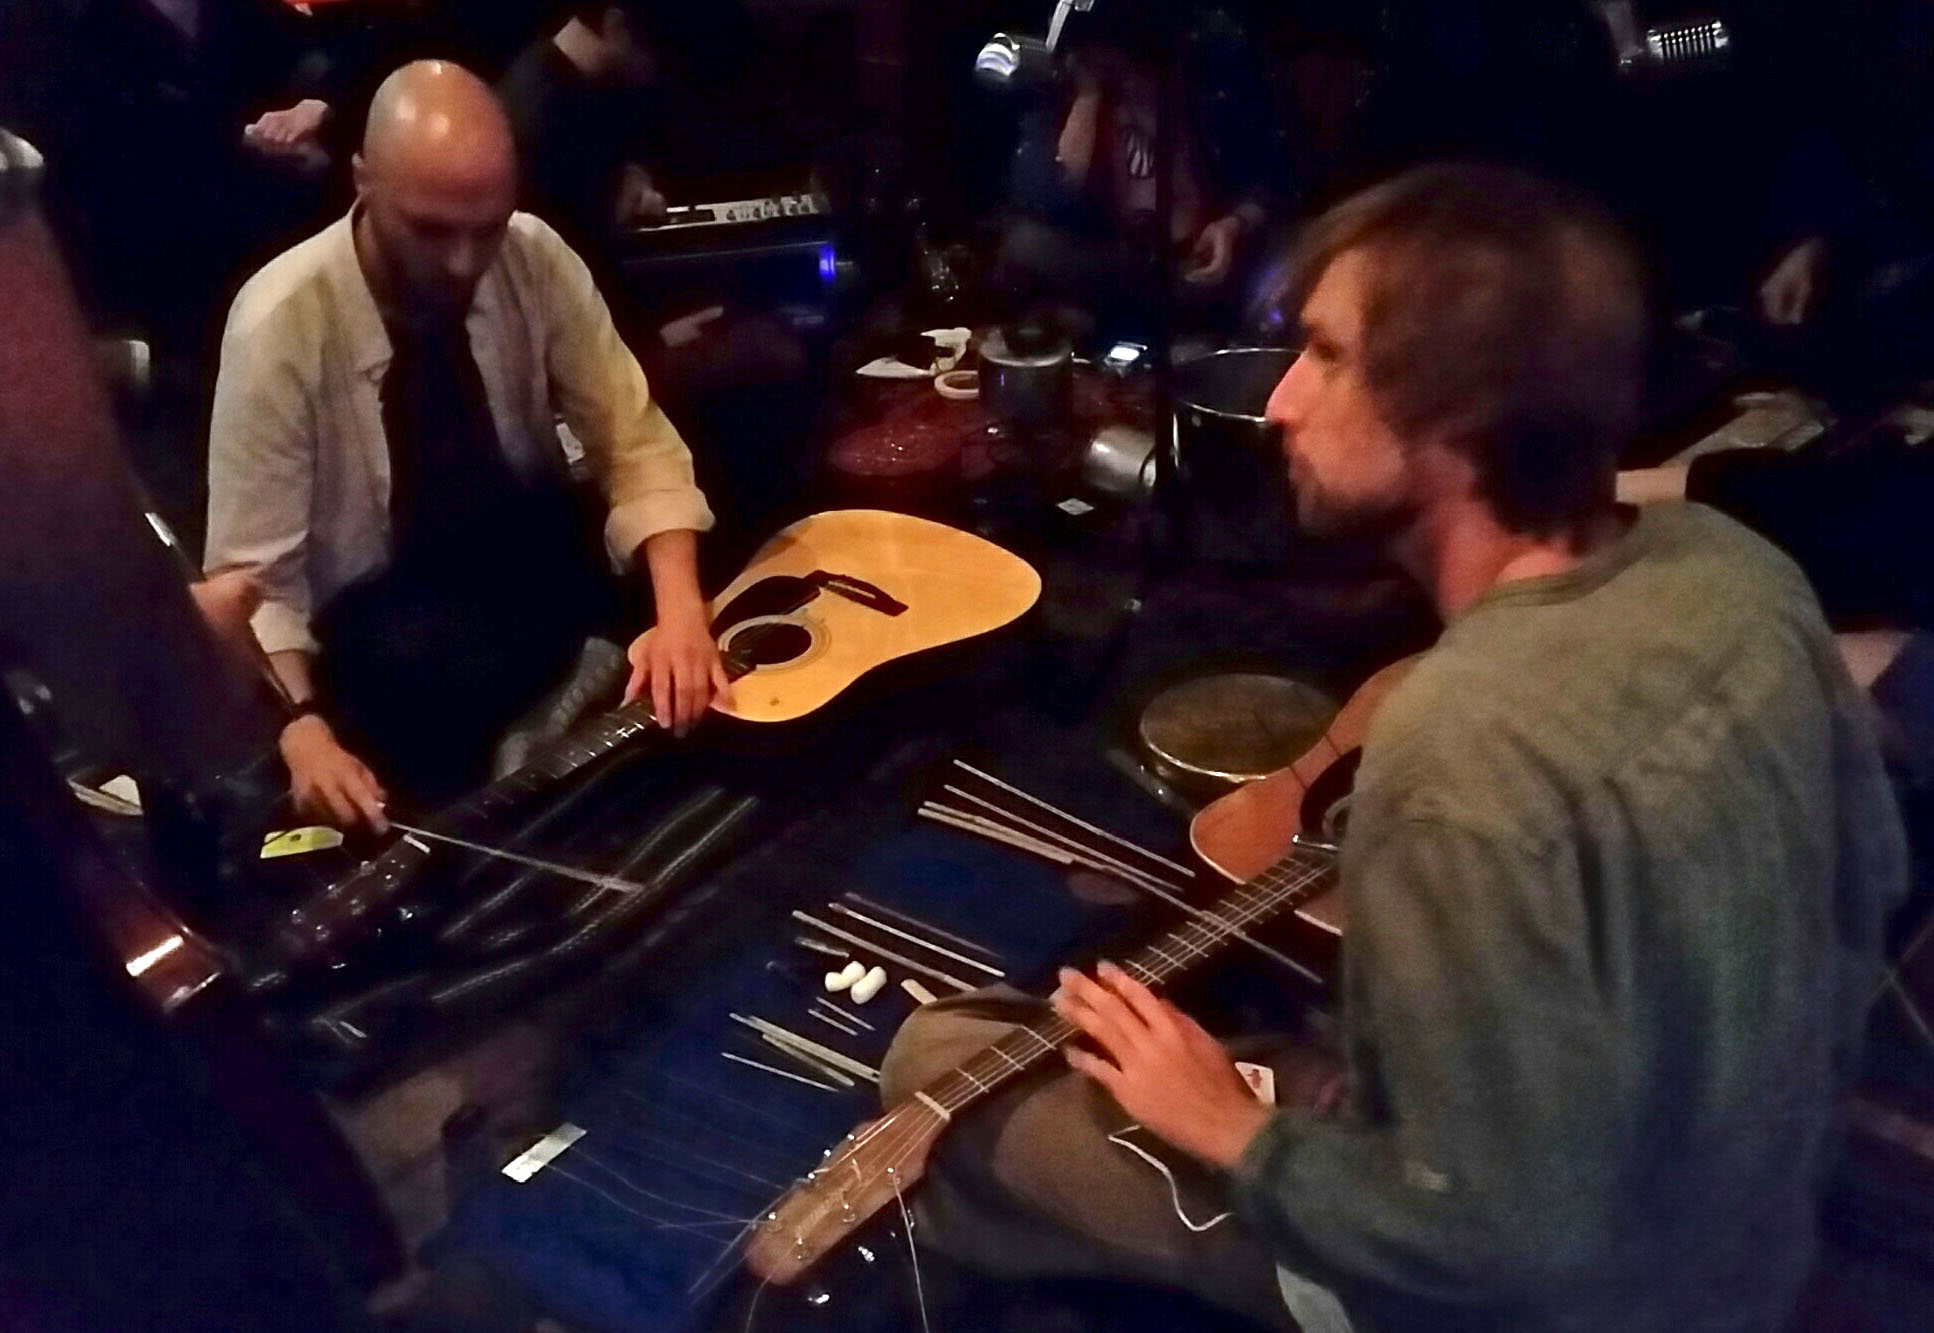 SONIC MOVES, May 2017, Kave Bar Newport, Performing: The small thin sharp piece of wood